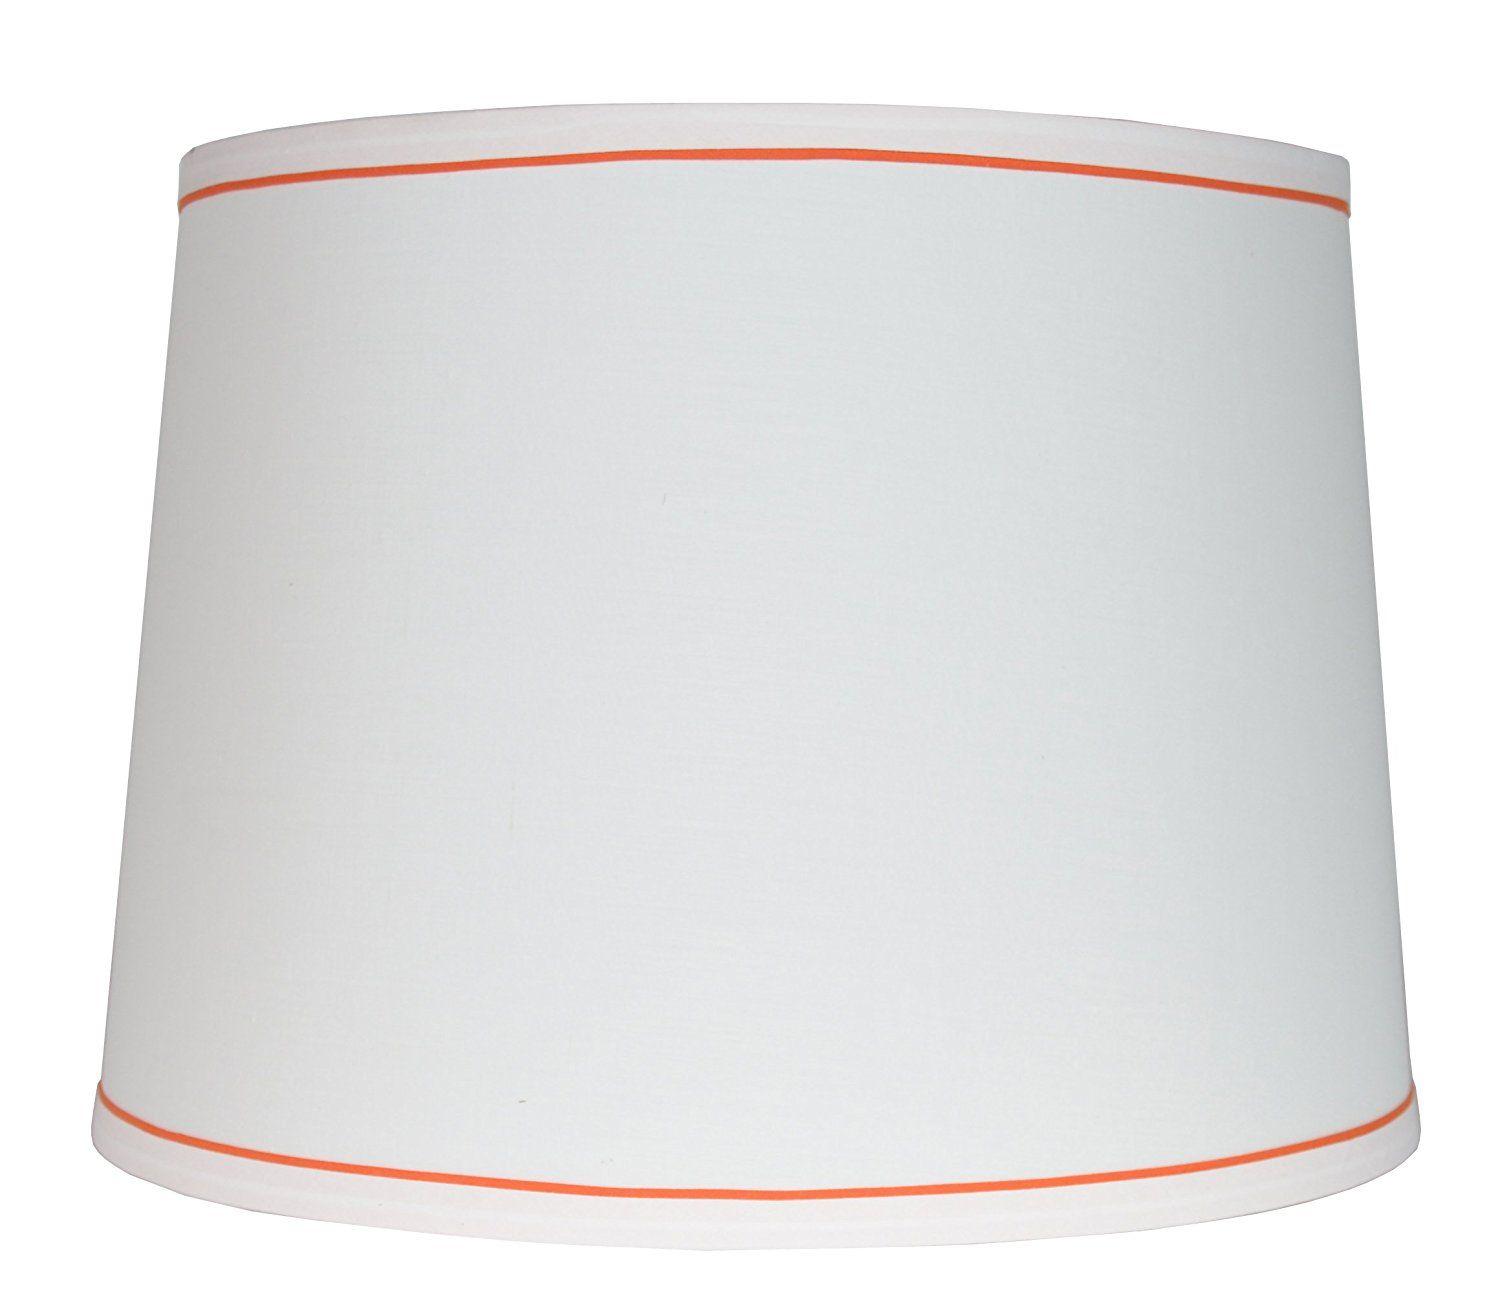 Urbanest White With Trim French Drum Lampshade 12 Inch By 14 Inch By 10 Inch Orange Spider You Can Get Additional Details Drum Lampshade Lamp Shade Lamp